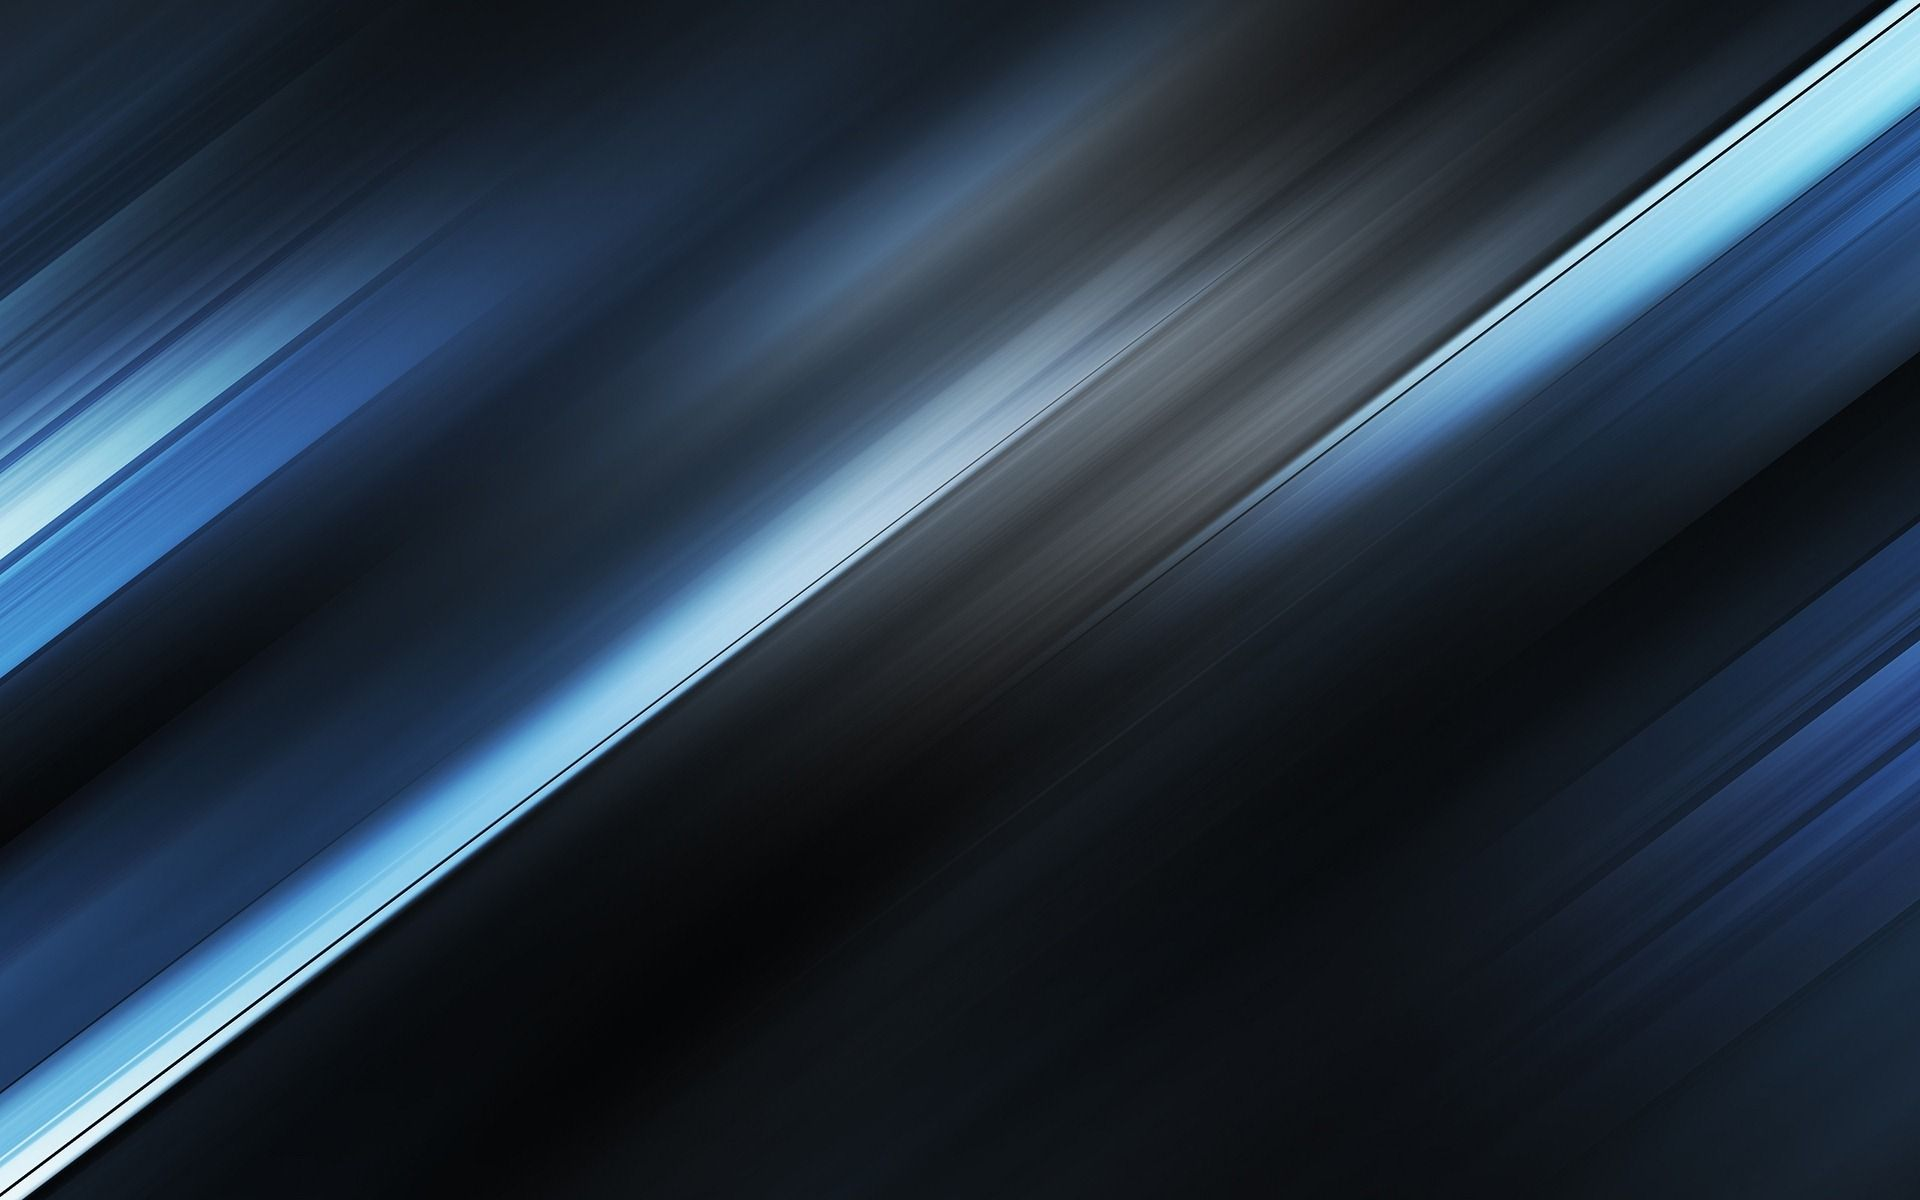 Pin By Shazan On Materials Png Samples Cool Backgrounds Hd Cool Backgrounds Wallpapers Abstract Wallpaper